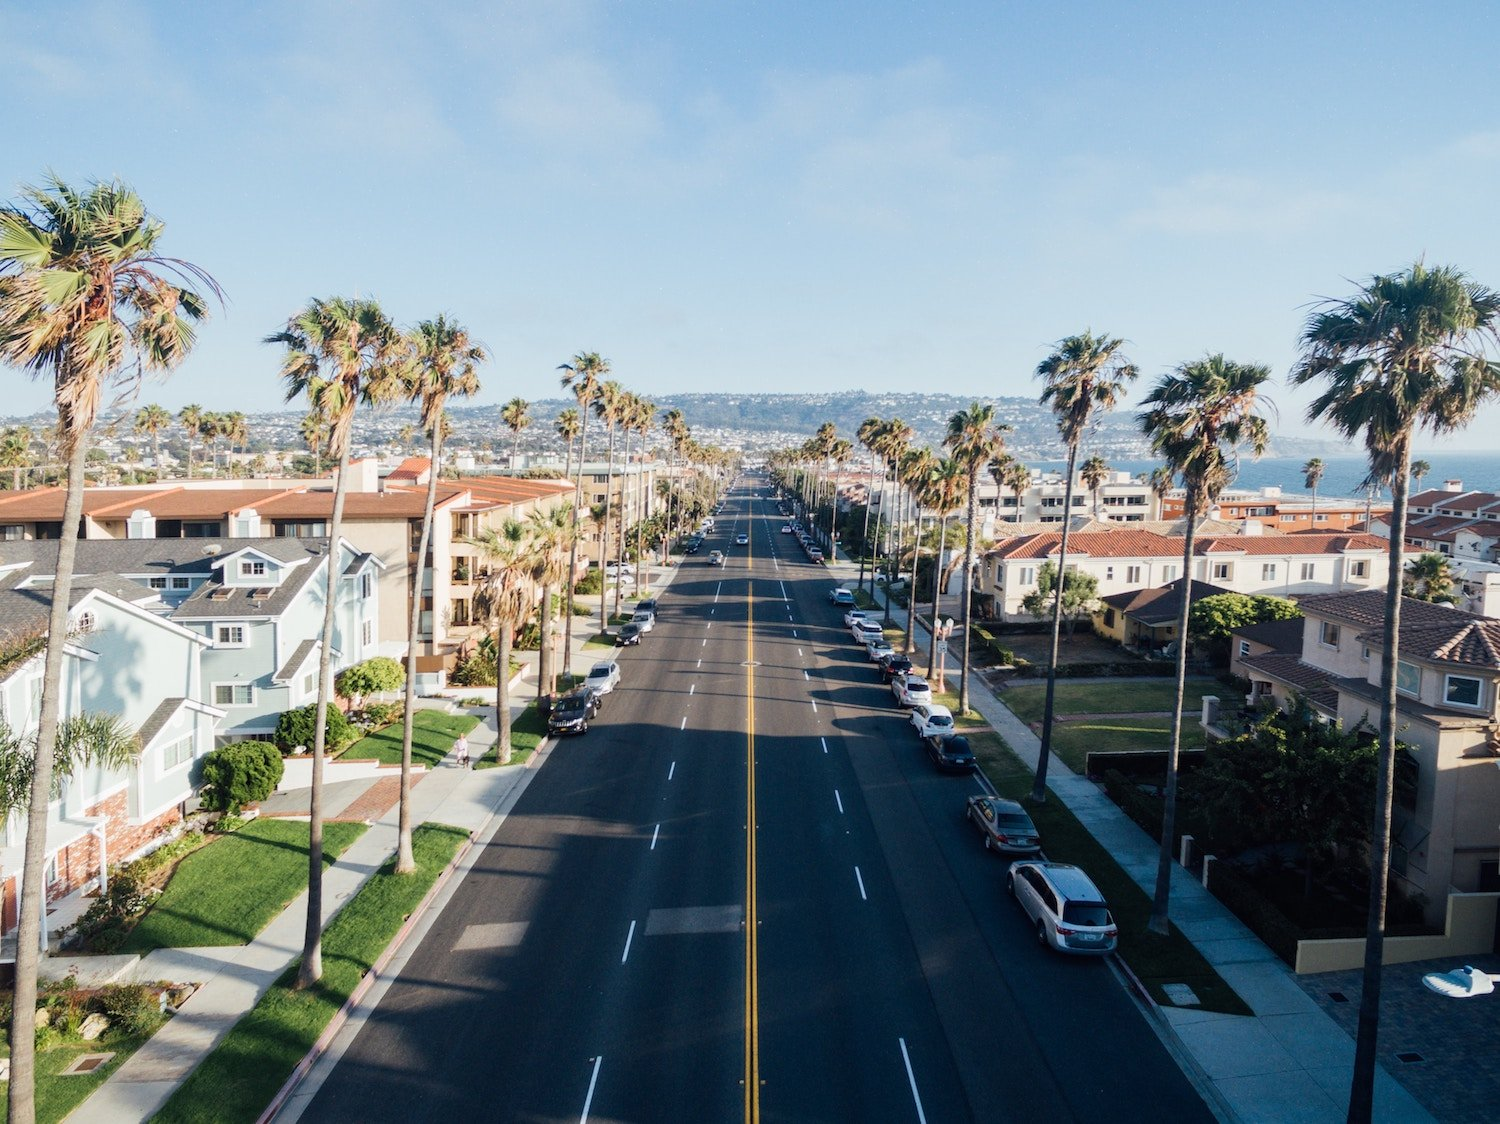 california road with palm trees